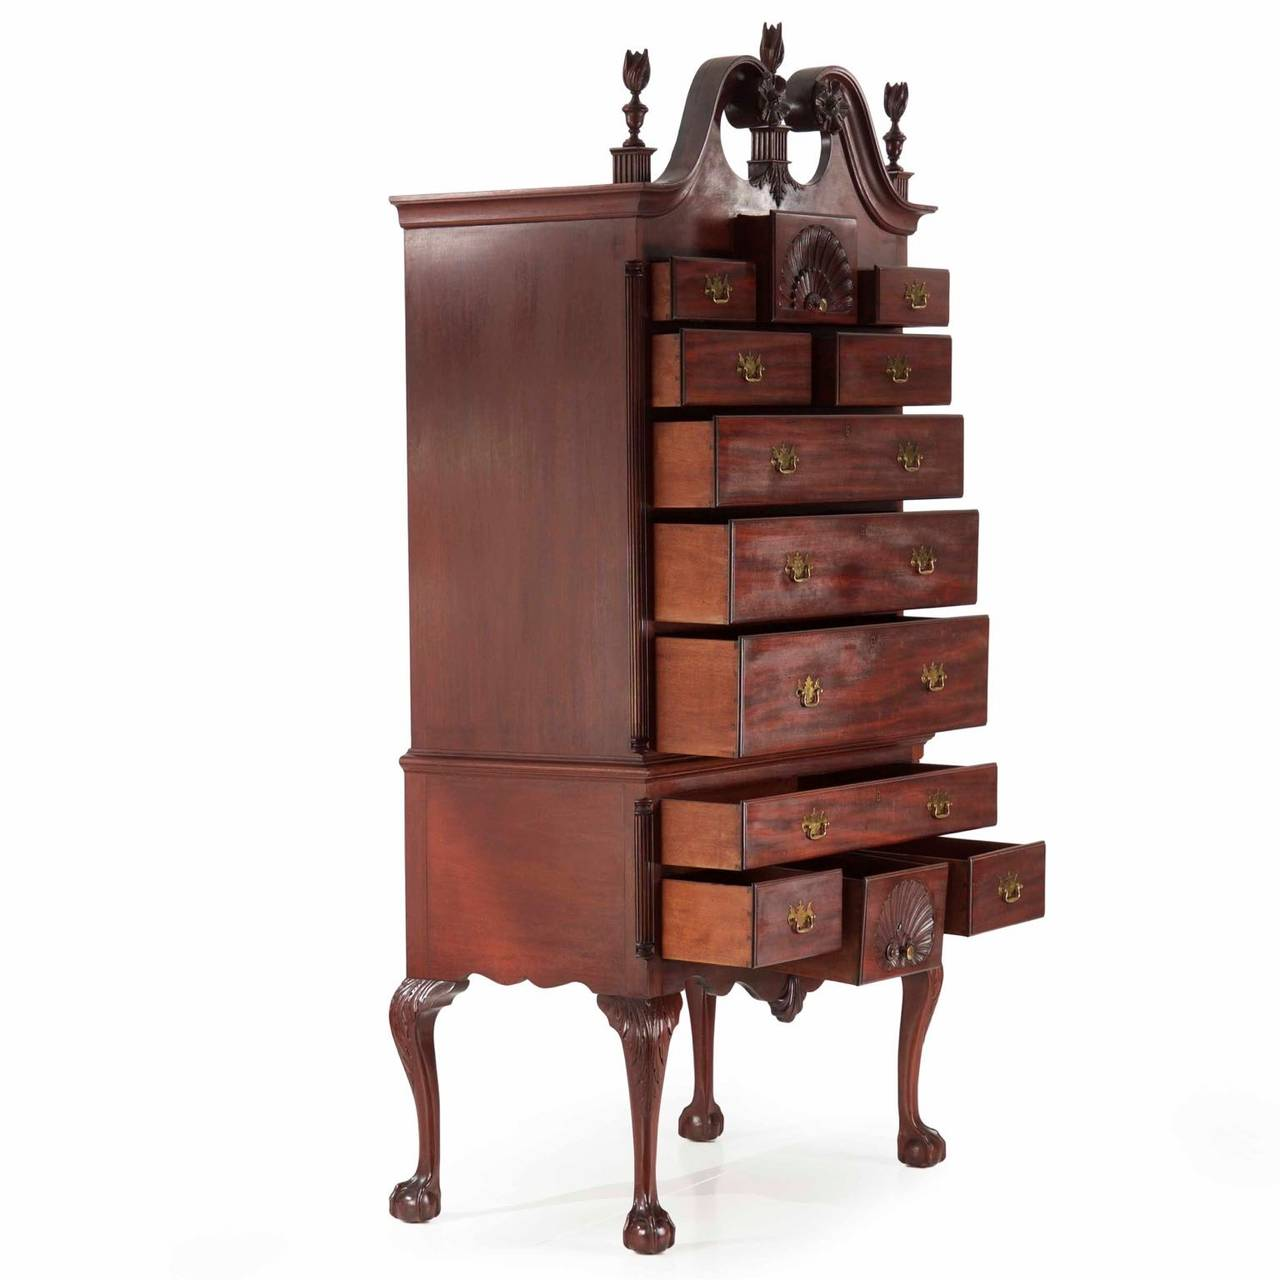 American Chippendale Style Antique Highboy Chest of